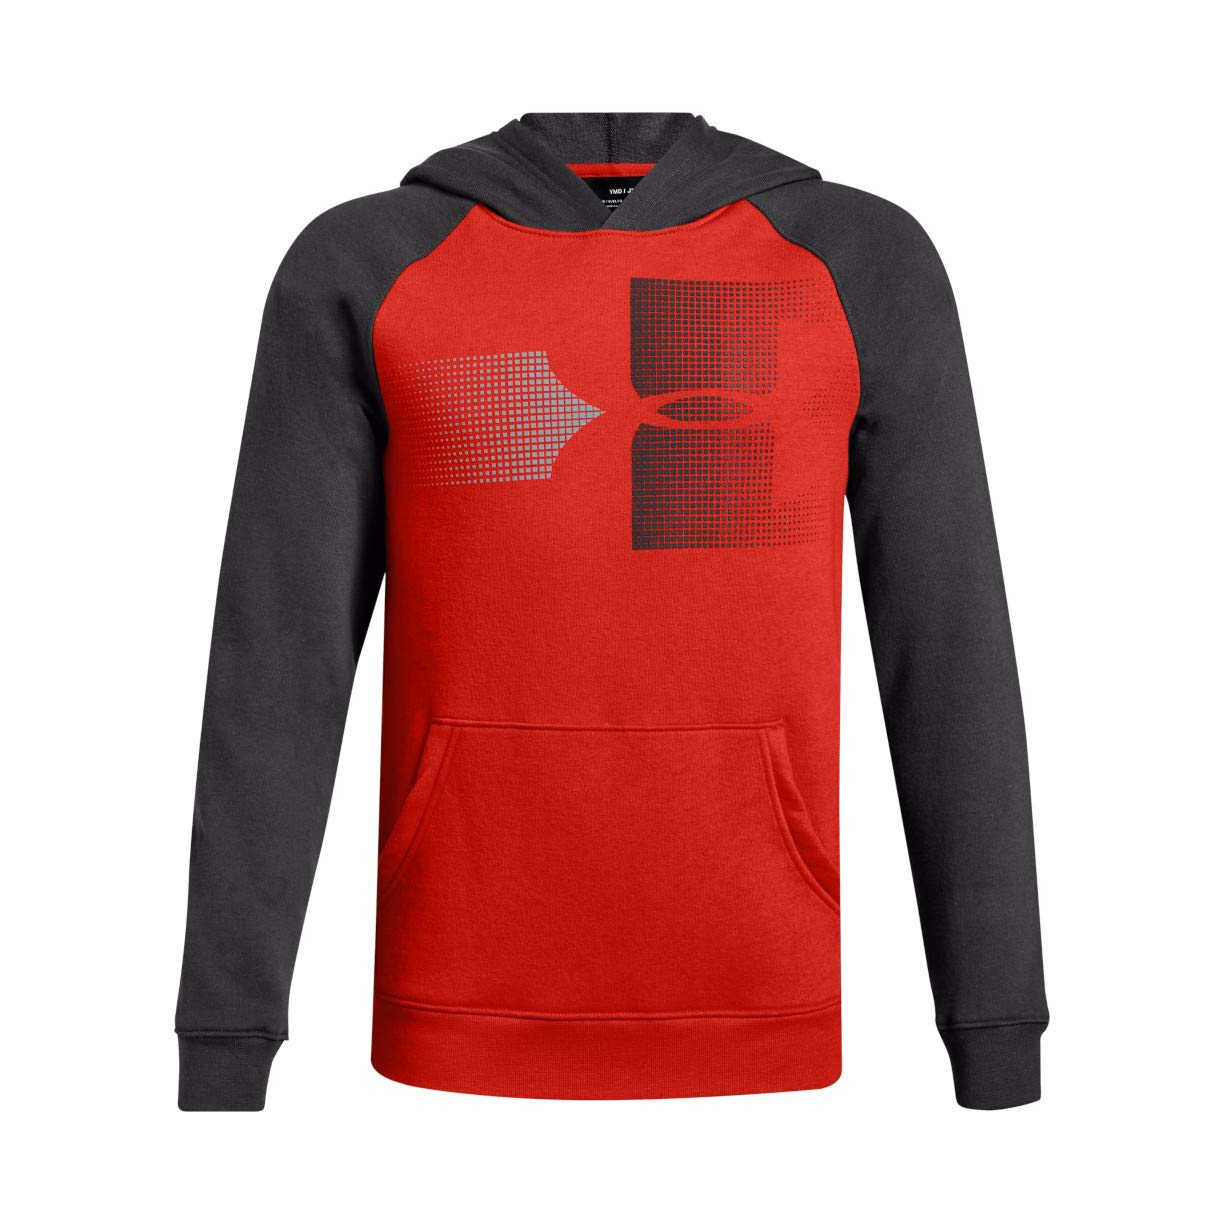 Under Armour Boys Rival Logo Hoodie, Radio Red (891)/Charcoal, Youth Medium by Under Armour